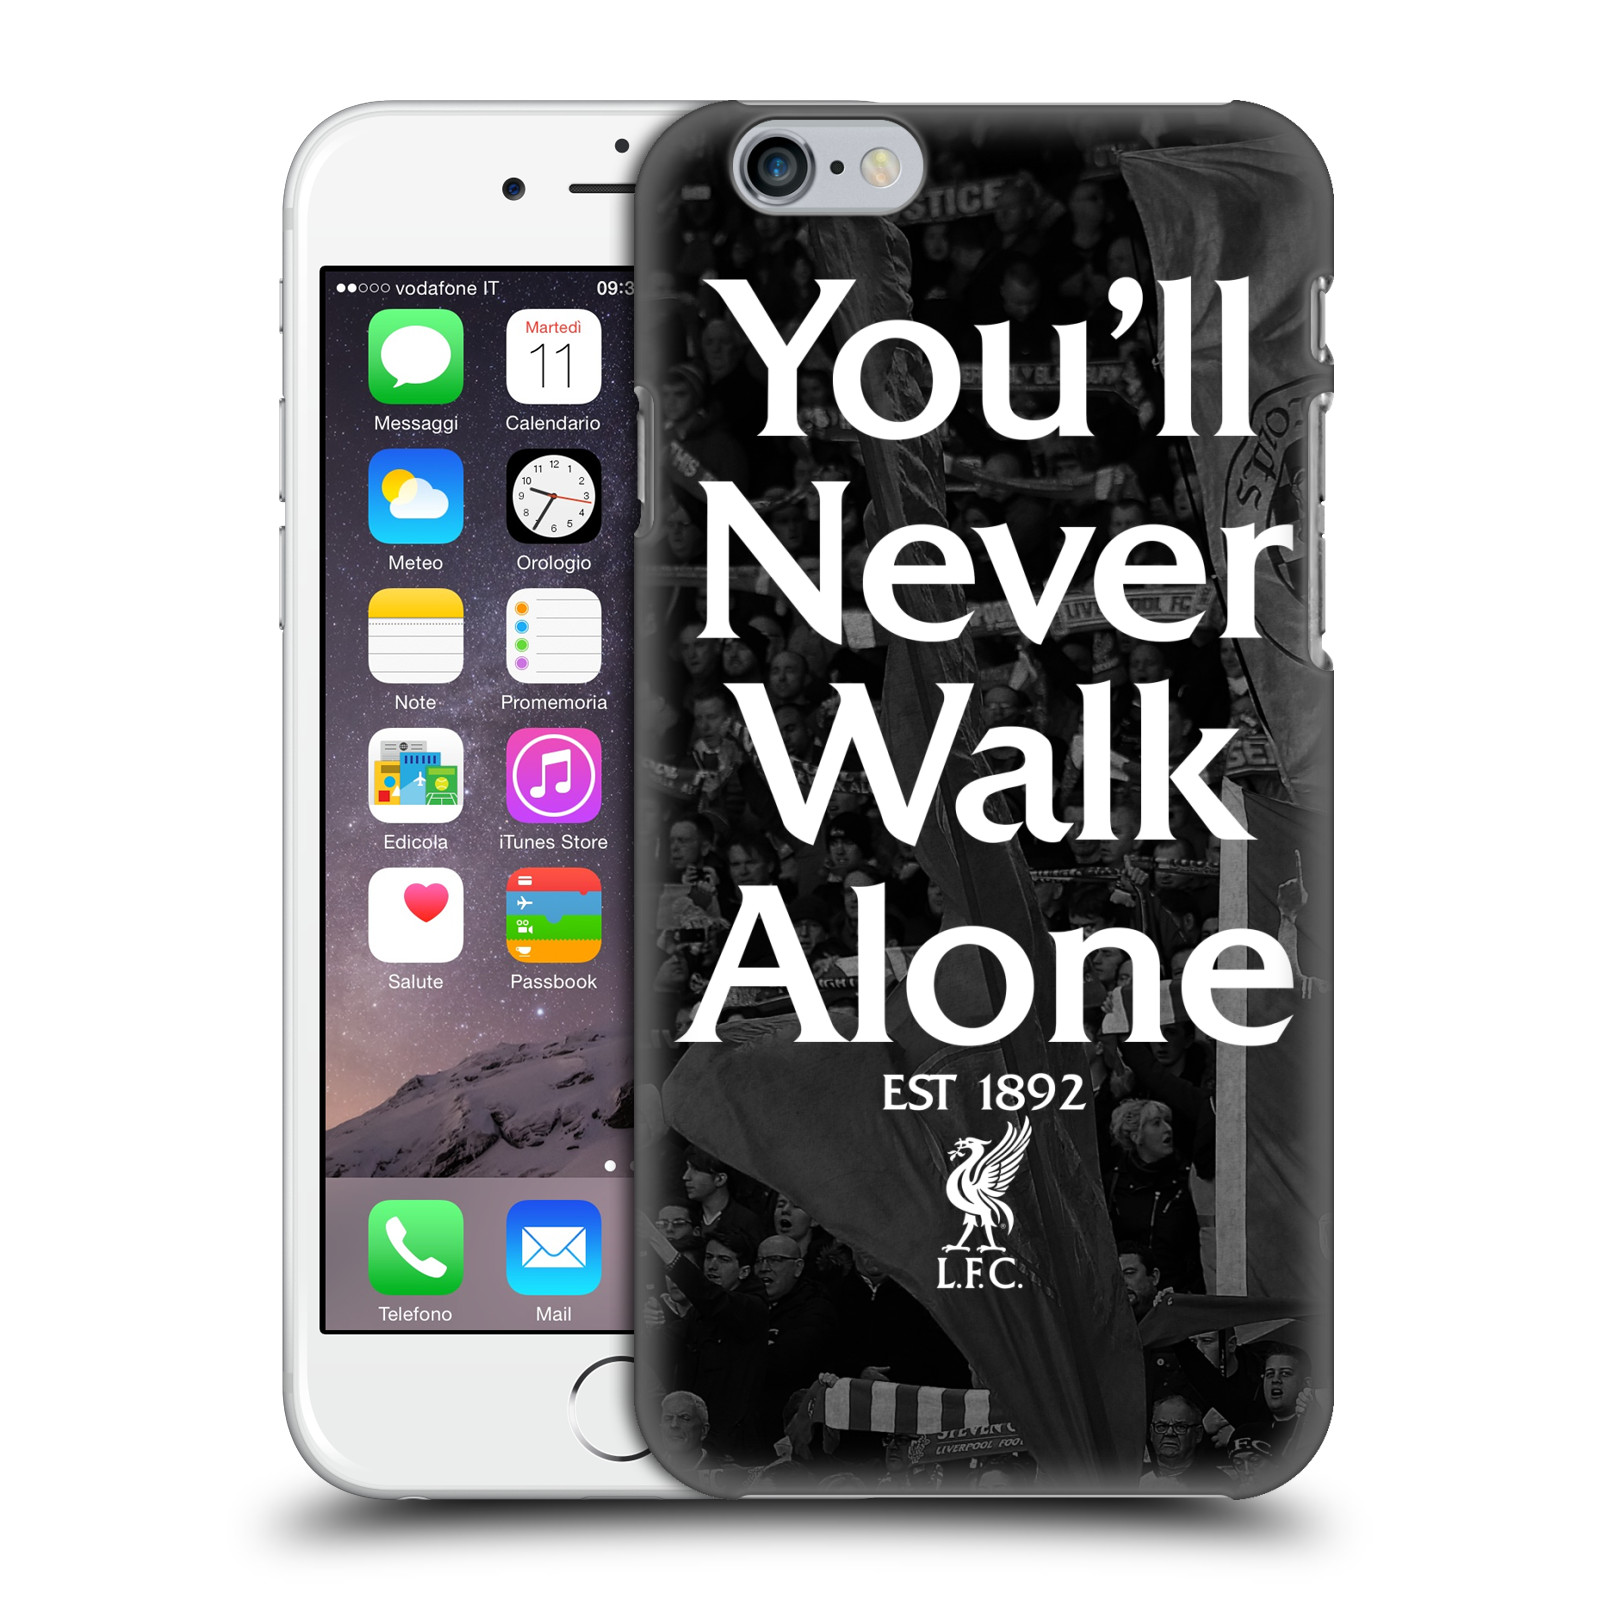 Liverpool FC LFC You'll Never Walk Alone-Kop 1